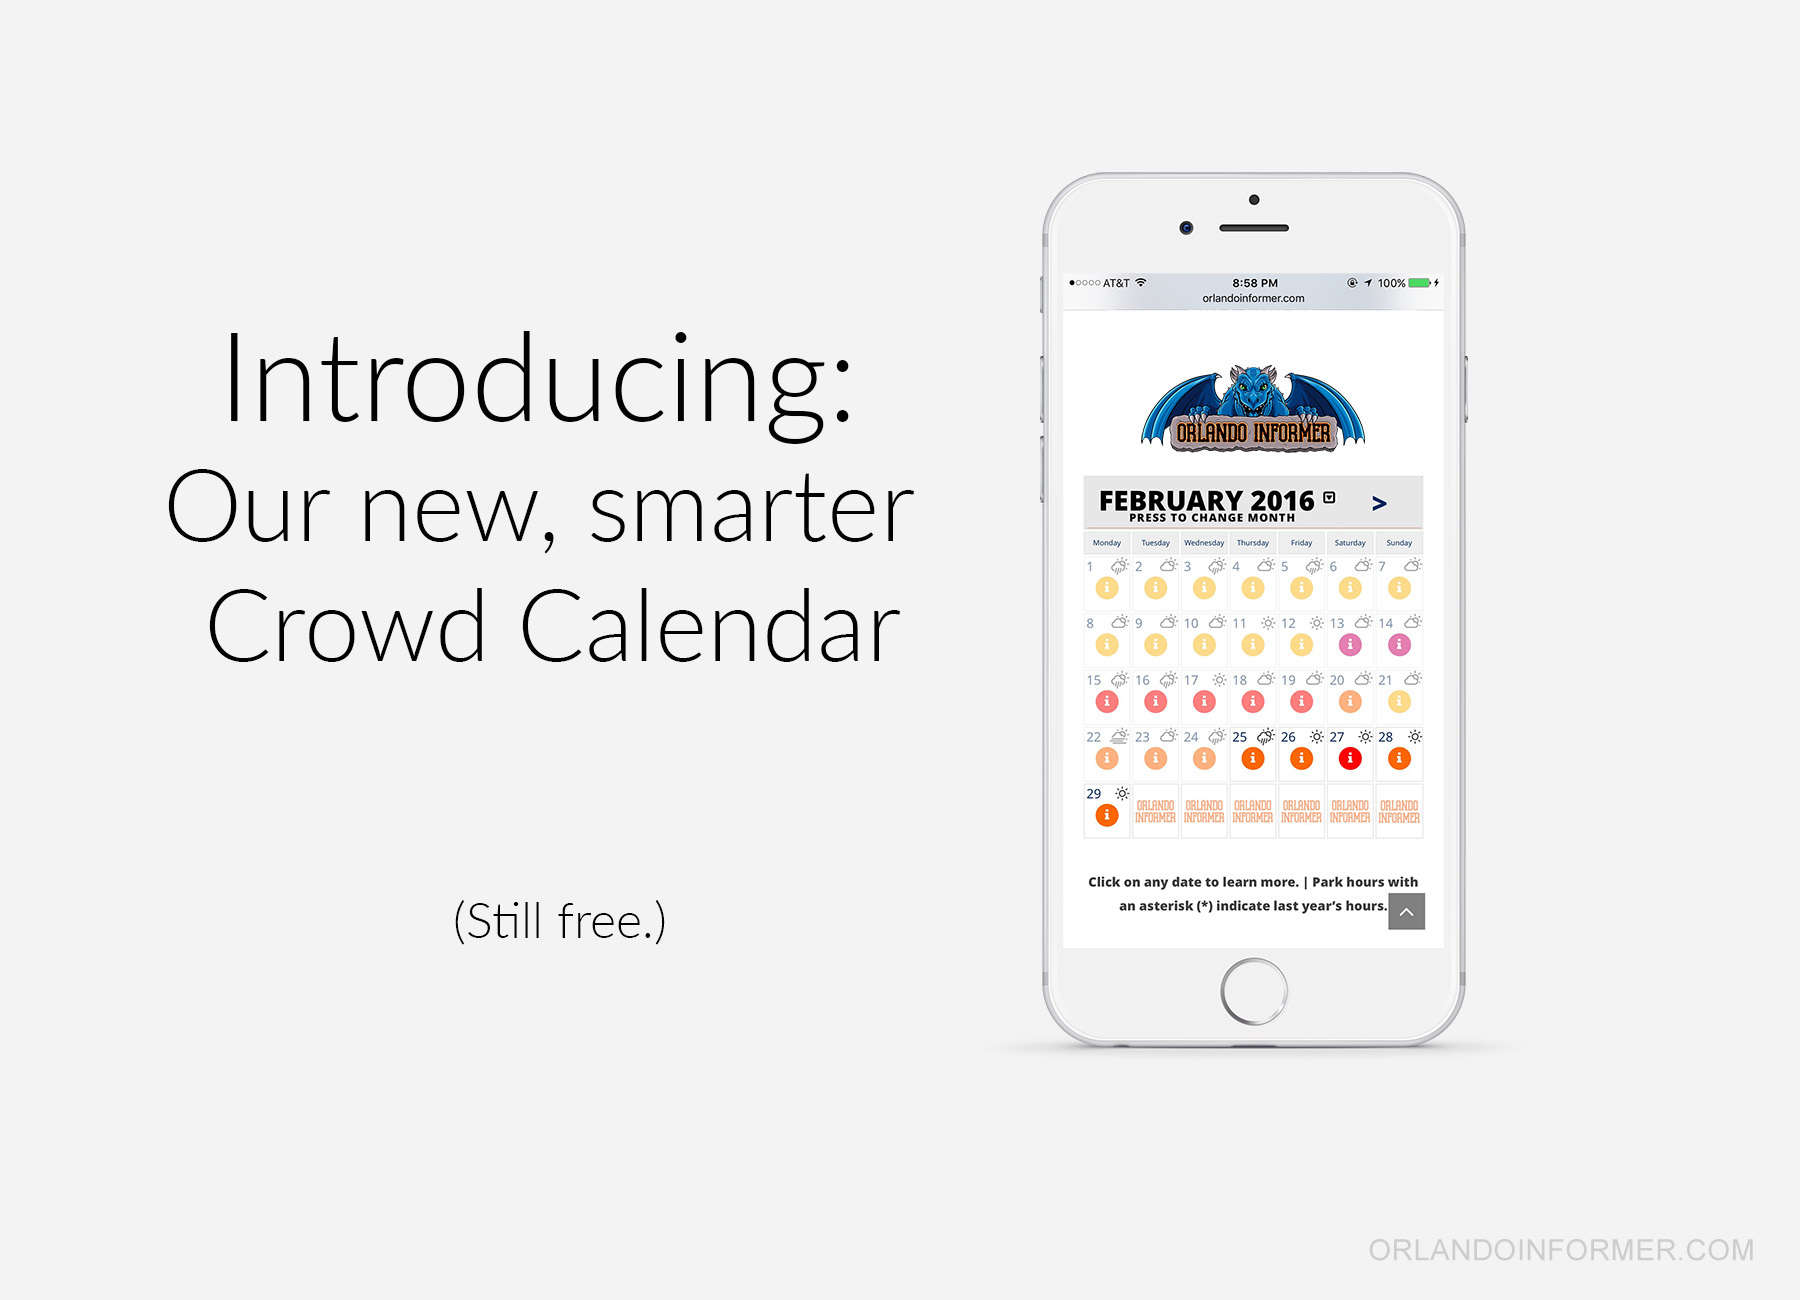 The world's best Universal crowd calendar just got better